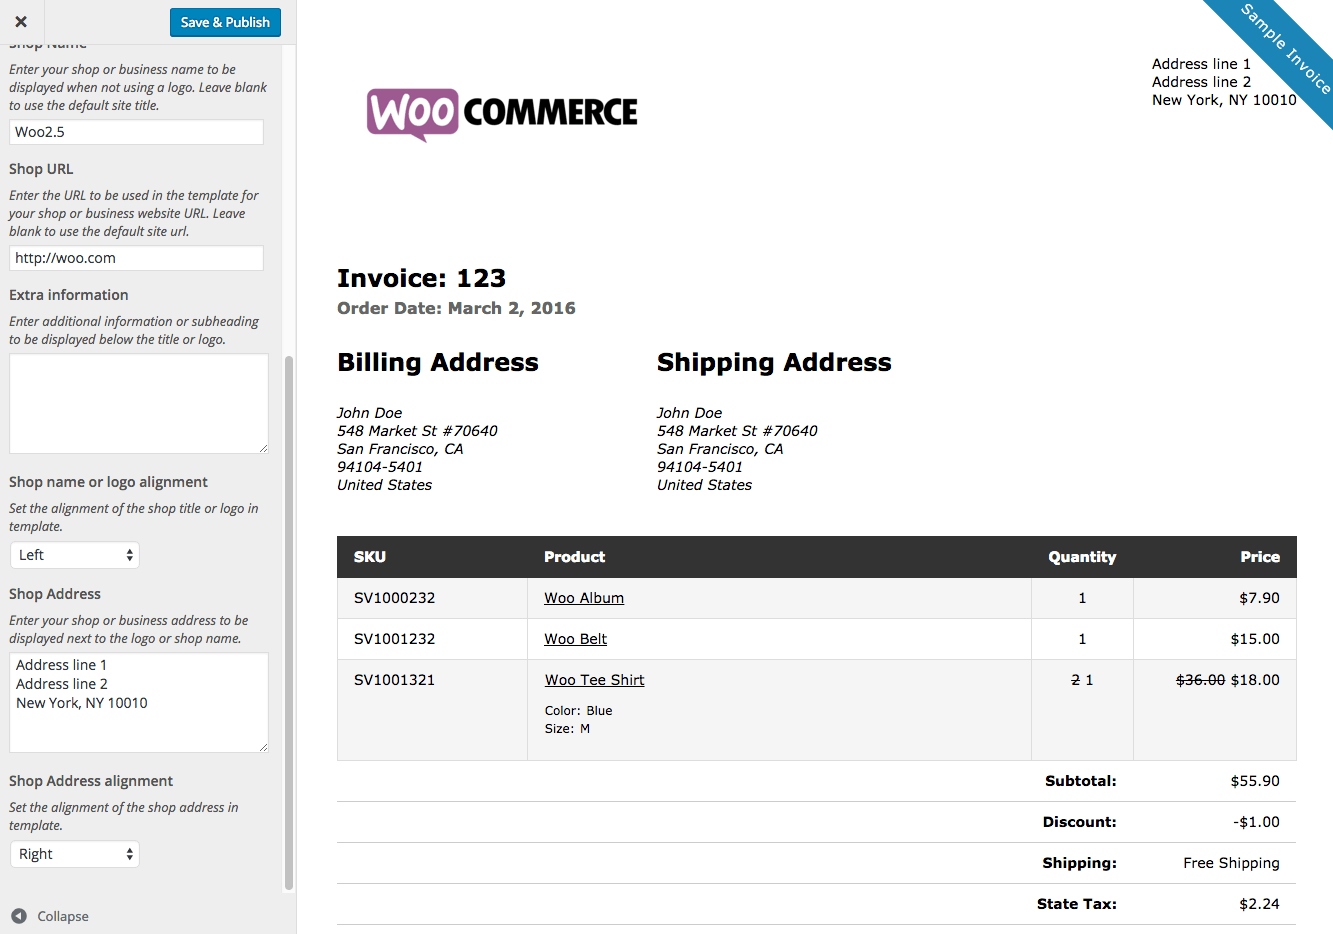 Coolmathgamesus  Splendid Woocommerce Print Invoices Amp Packing Lists  Woocommerce Docs With Hot Woocommerce Print Invoices  Packing Lists Customizer With Easy On The Eye Gamestop Return Policy No Receipt Also Charity Receipts For Taxes In Addition Personal Property Tax Receipt Missouri And Receipt Printer Ink As Well As Rental Payment Receipt Additionally Chicago Taxi Receipt From Docswoocommercecom With Coolmathgamesus  Hot Woocommerce Print Invoices Amp Packing Lists  Woocommerce Docs With Easy On The Eye Woocommerce Print Invoices  Packing Lists Customizer And Splendid Gamestop Return Policy No Receipt Also Charity Receipts For Taxes In Addition Personal Property Tax Receipt Missouri From Docswoocommercecom